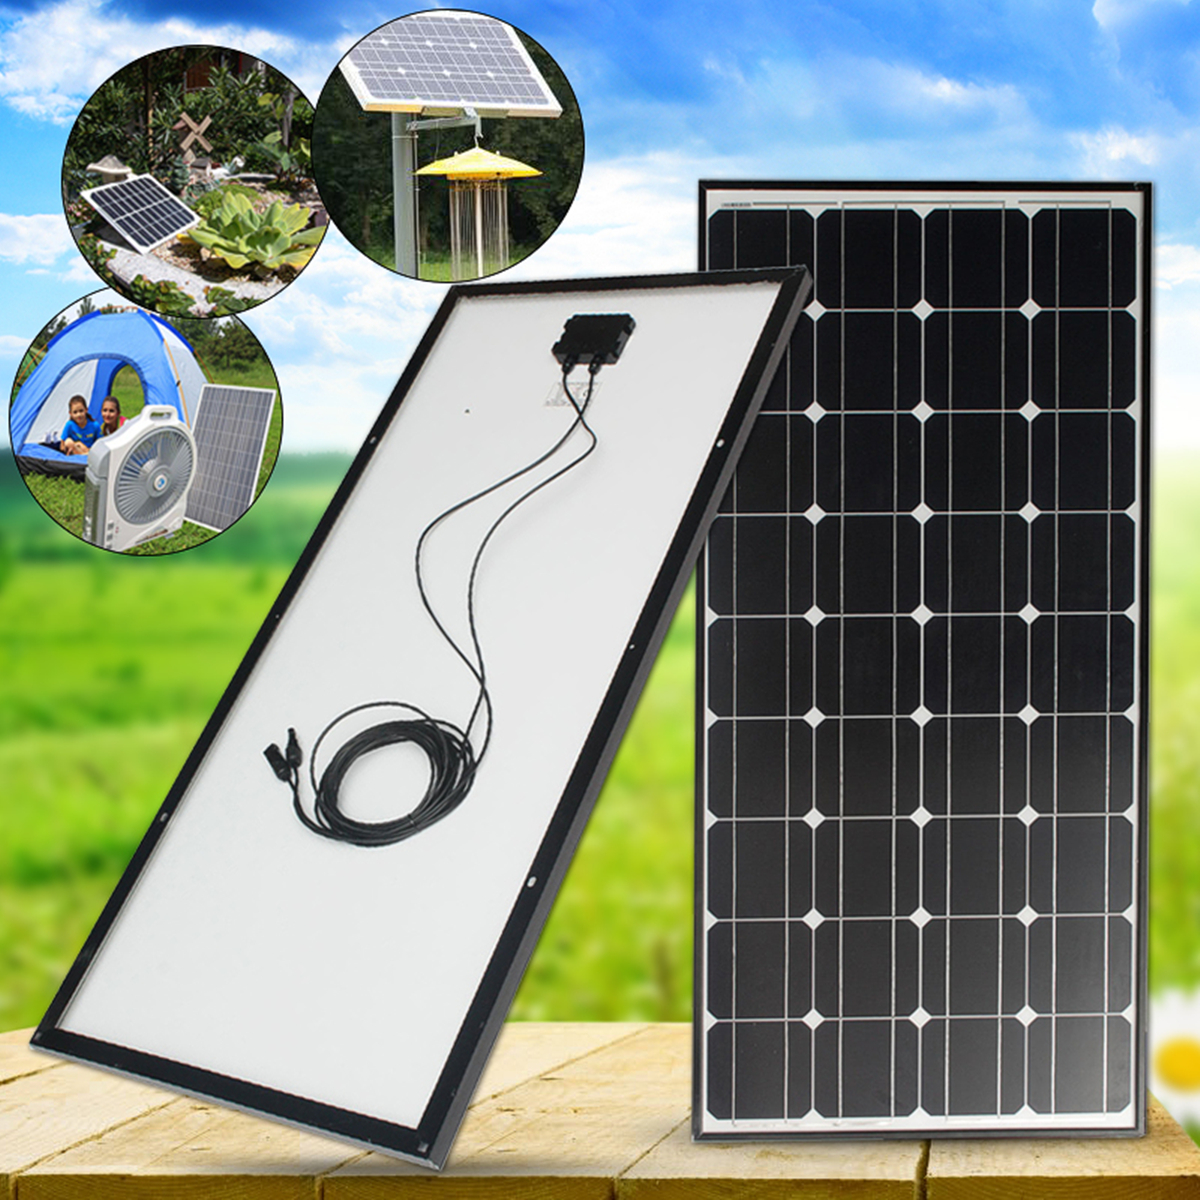 100W Solar Panel 18V 100W Solar Charger For Car Battery 12V Battery Charger Monocrystalline Cells Module Kit leory 5w 18v solar panel monocrystalline waterproof multi purpose solar cells charger for mobilephone cars boat motorcycle